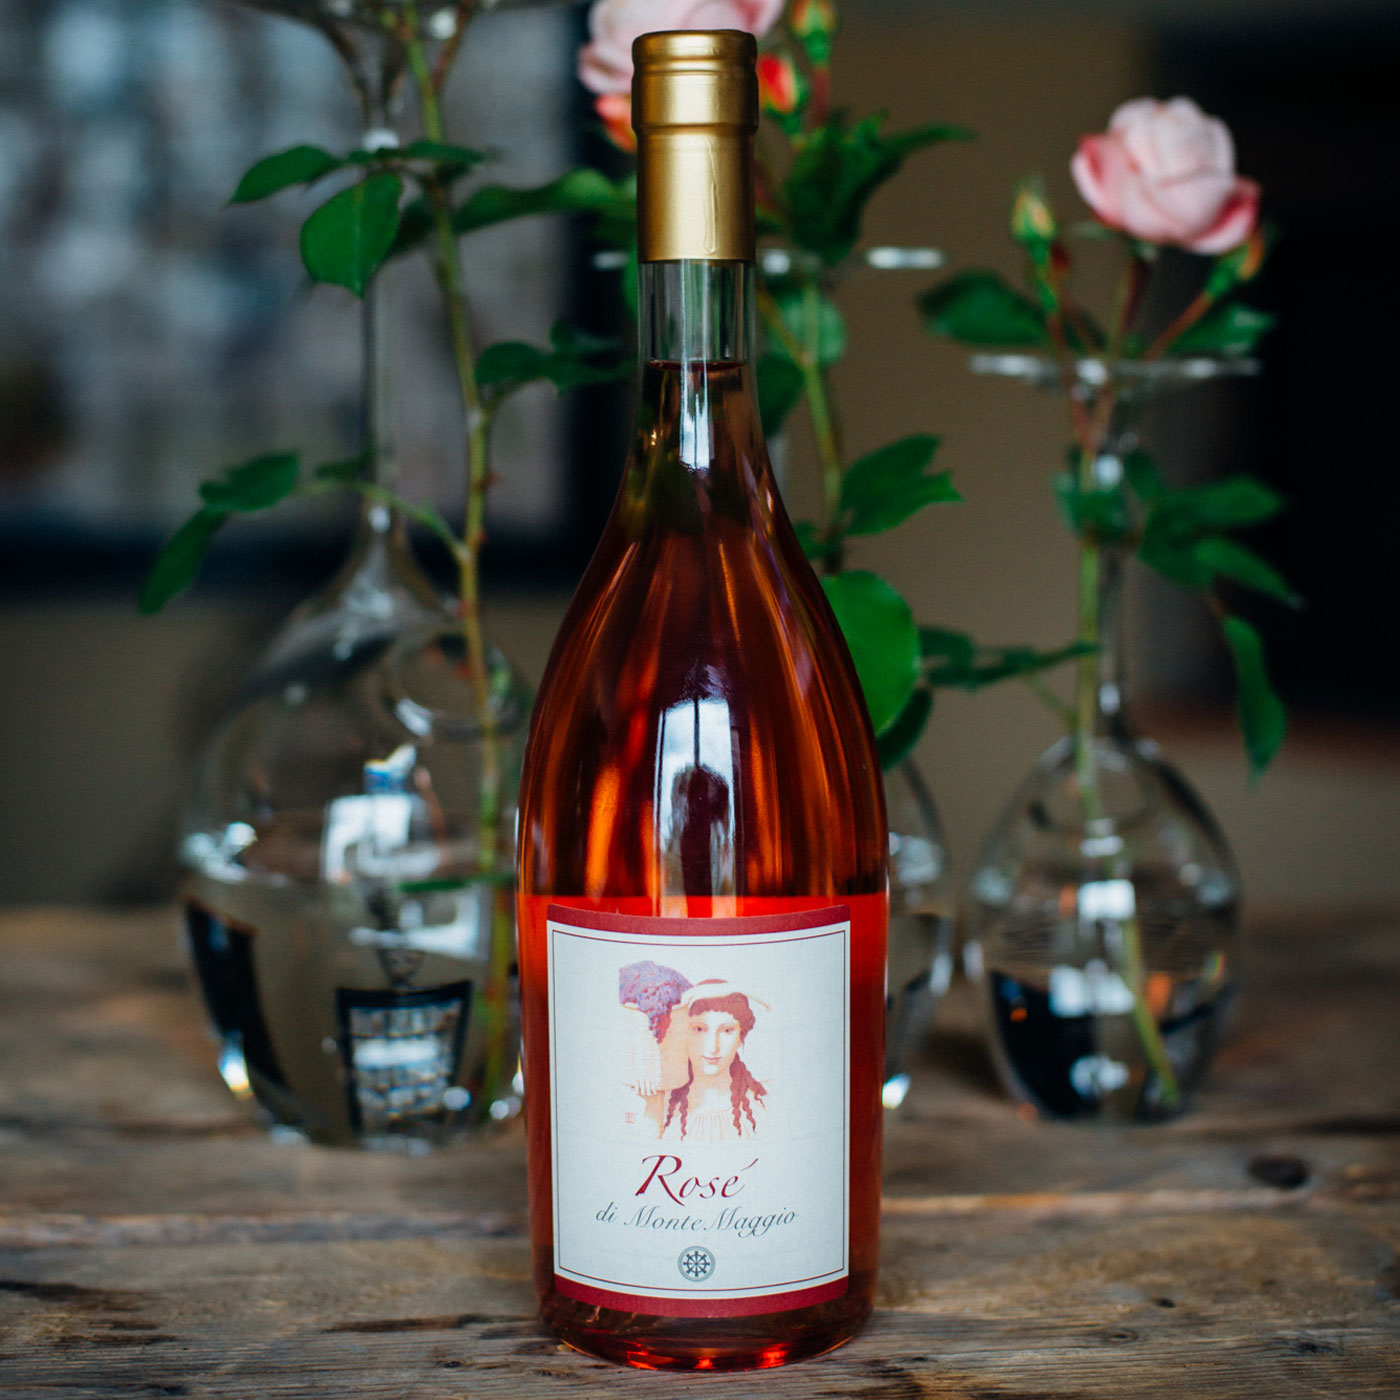 Take Italy home with you by ordering a bottle of Rosé di Montemaggio